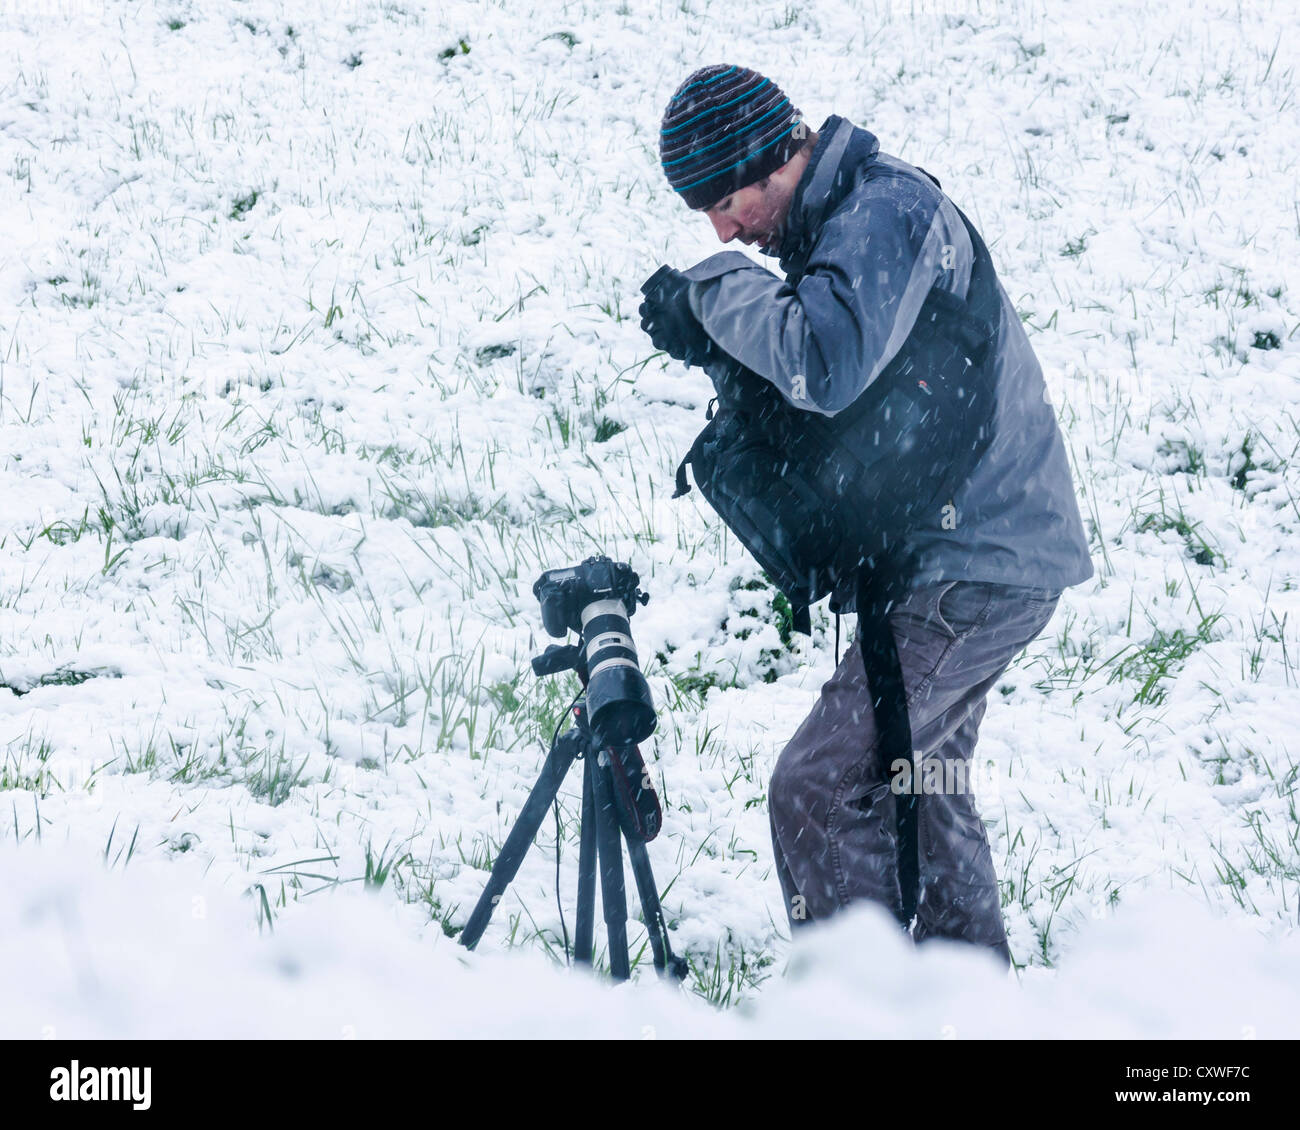 A photographer mounting his camera on a tripod to capture a recent snow fall - Stock Image